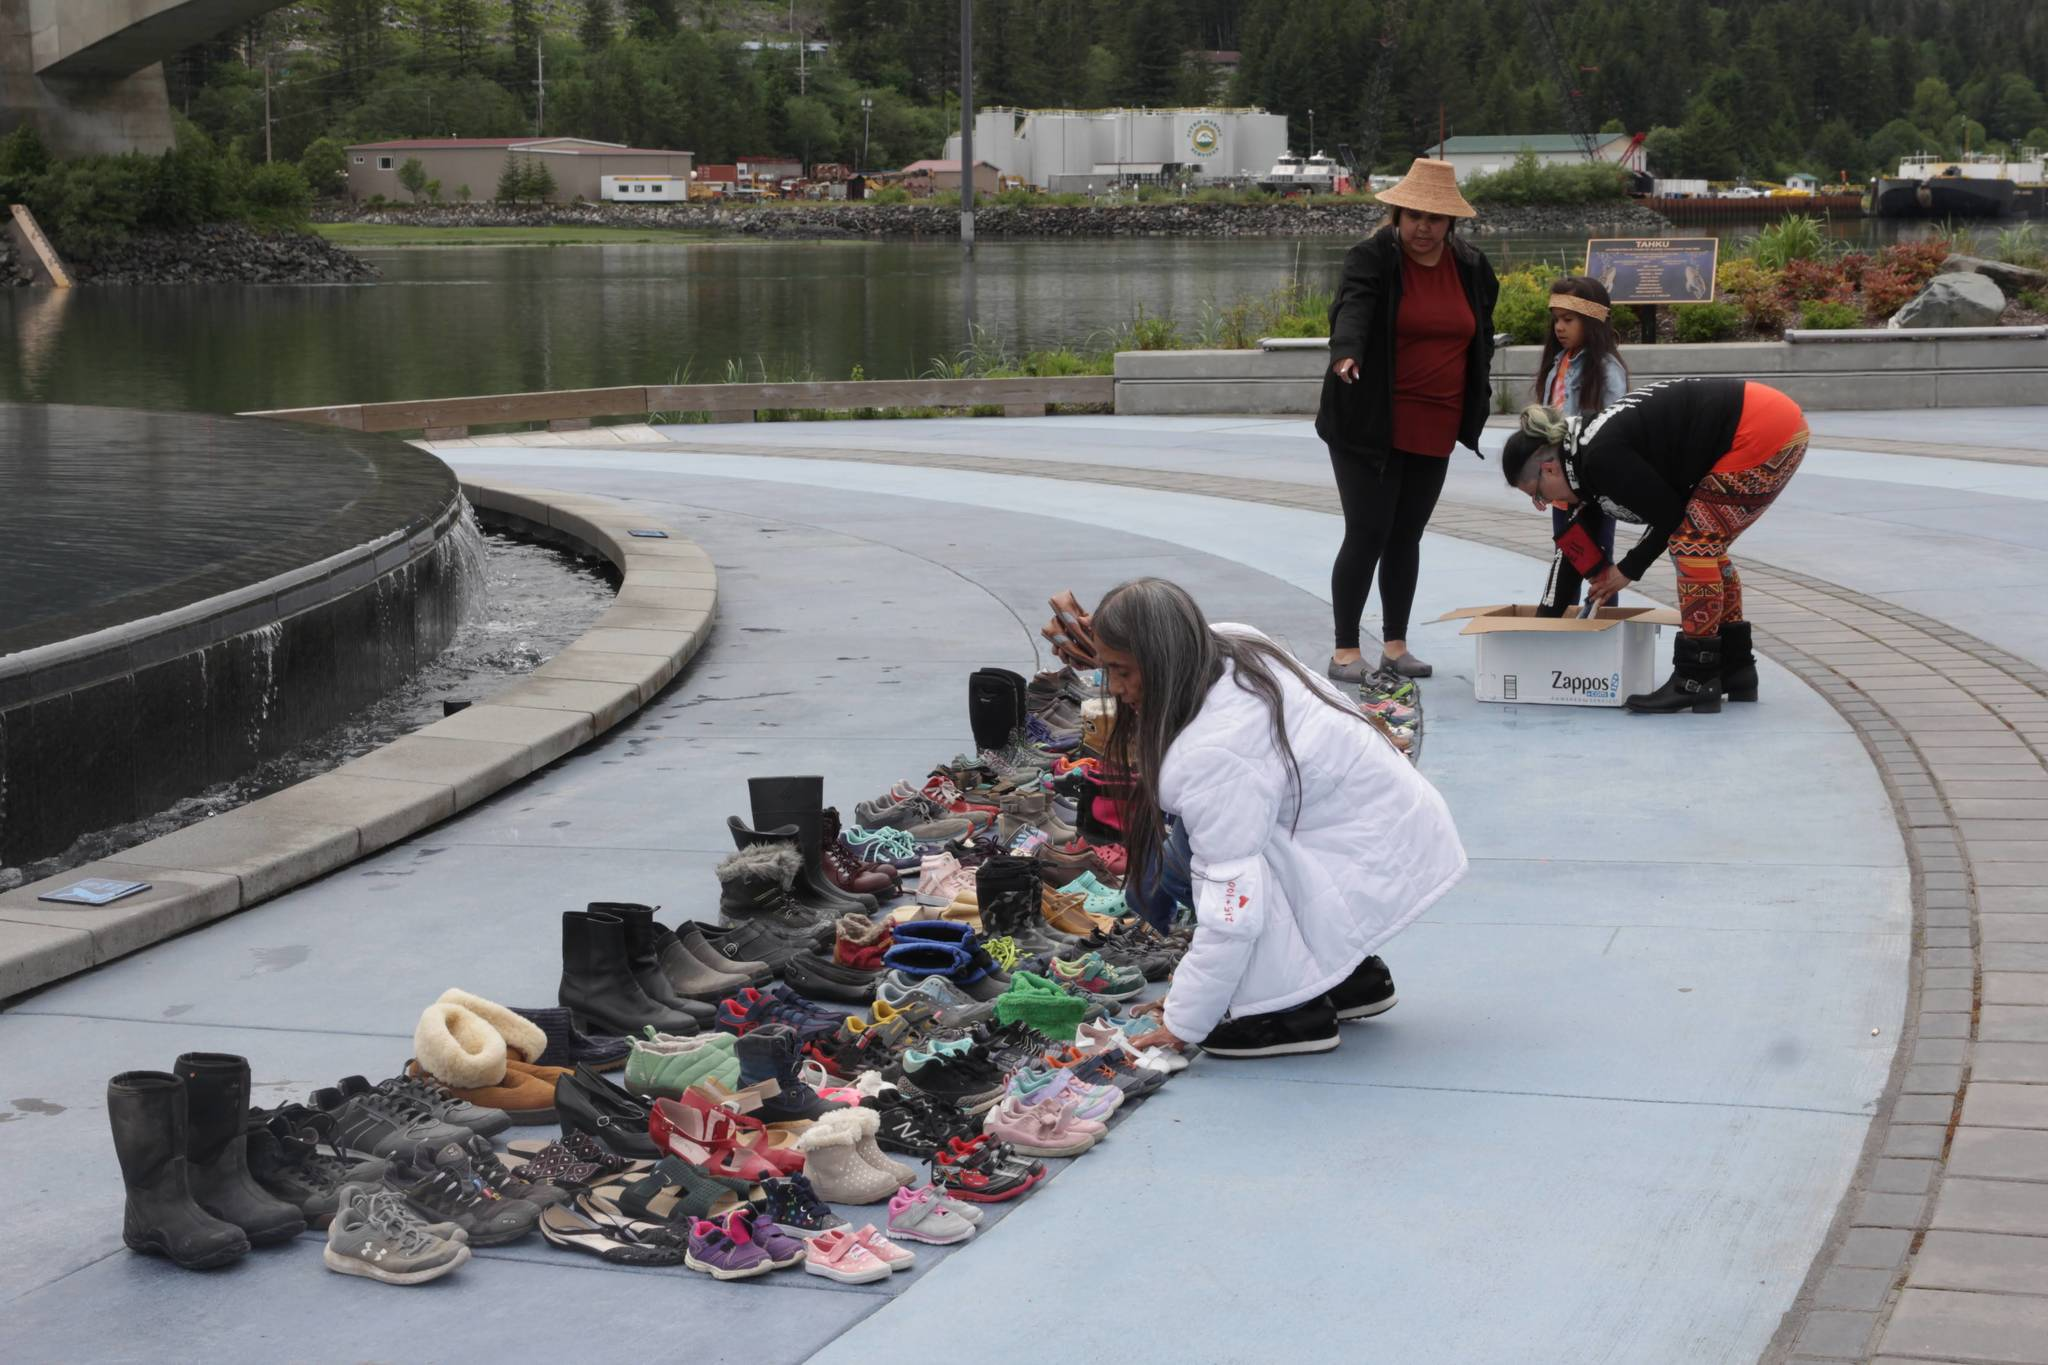 Juneau residents place hundreds of pairs of children's shoes in front of the state at Mayor Bill Overstreet Park on June 12, 2021 as they mourned for the 215 dead children uncovered at a residential school in Canada in Juneau, Alaska. (Michael S. Lockett/Juneau Empire)